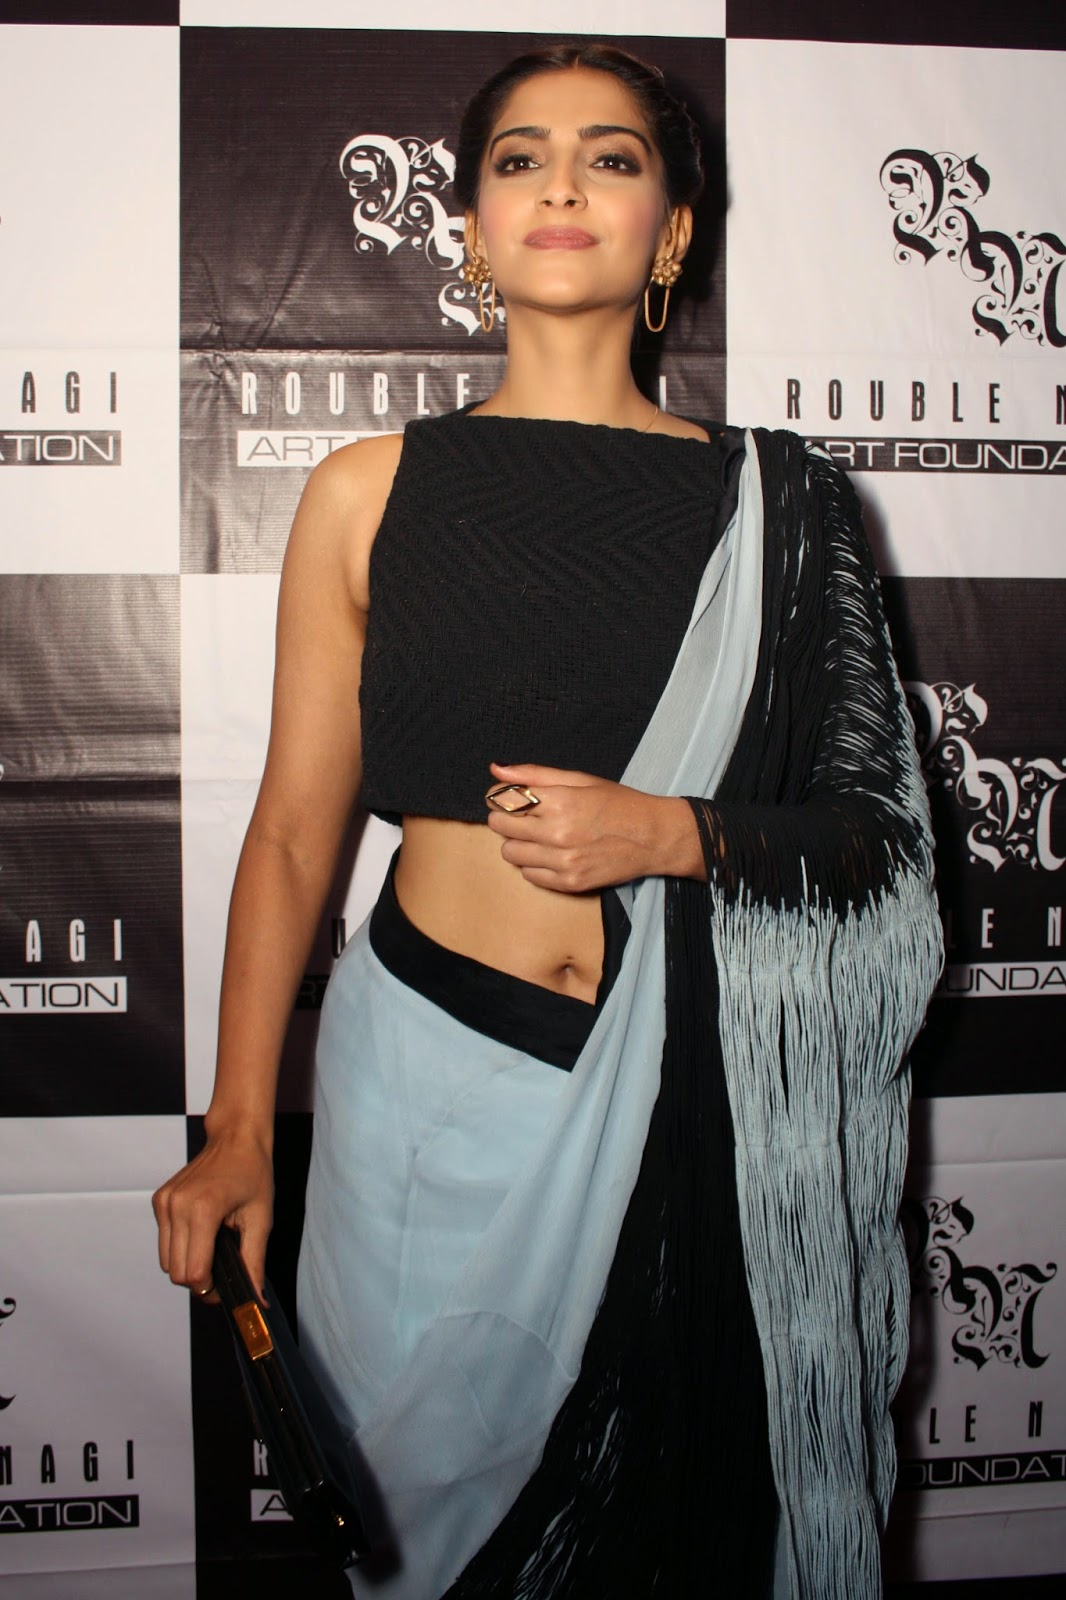 High Quality Bollywood Celebrity Pictures Sonam Kapoor -3056